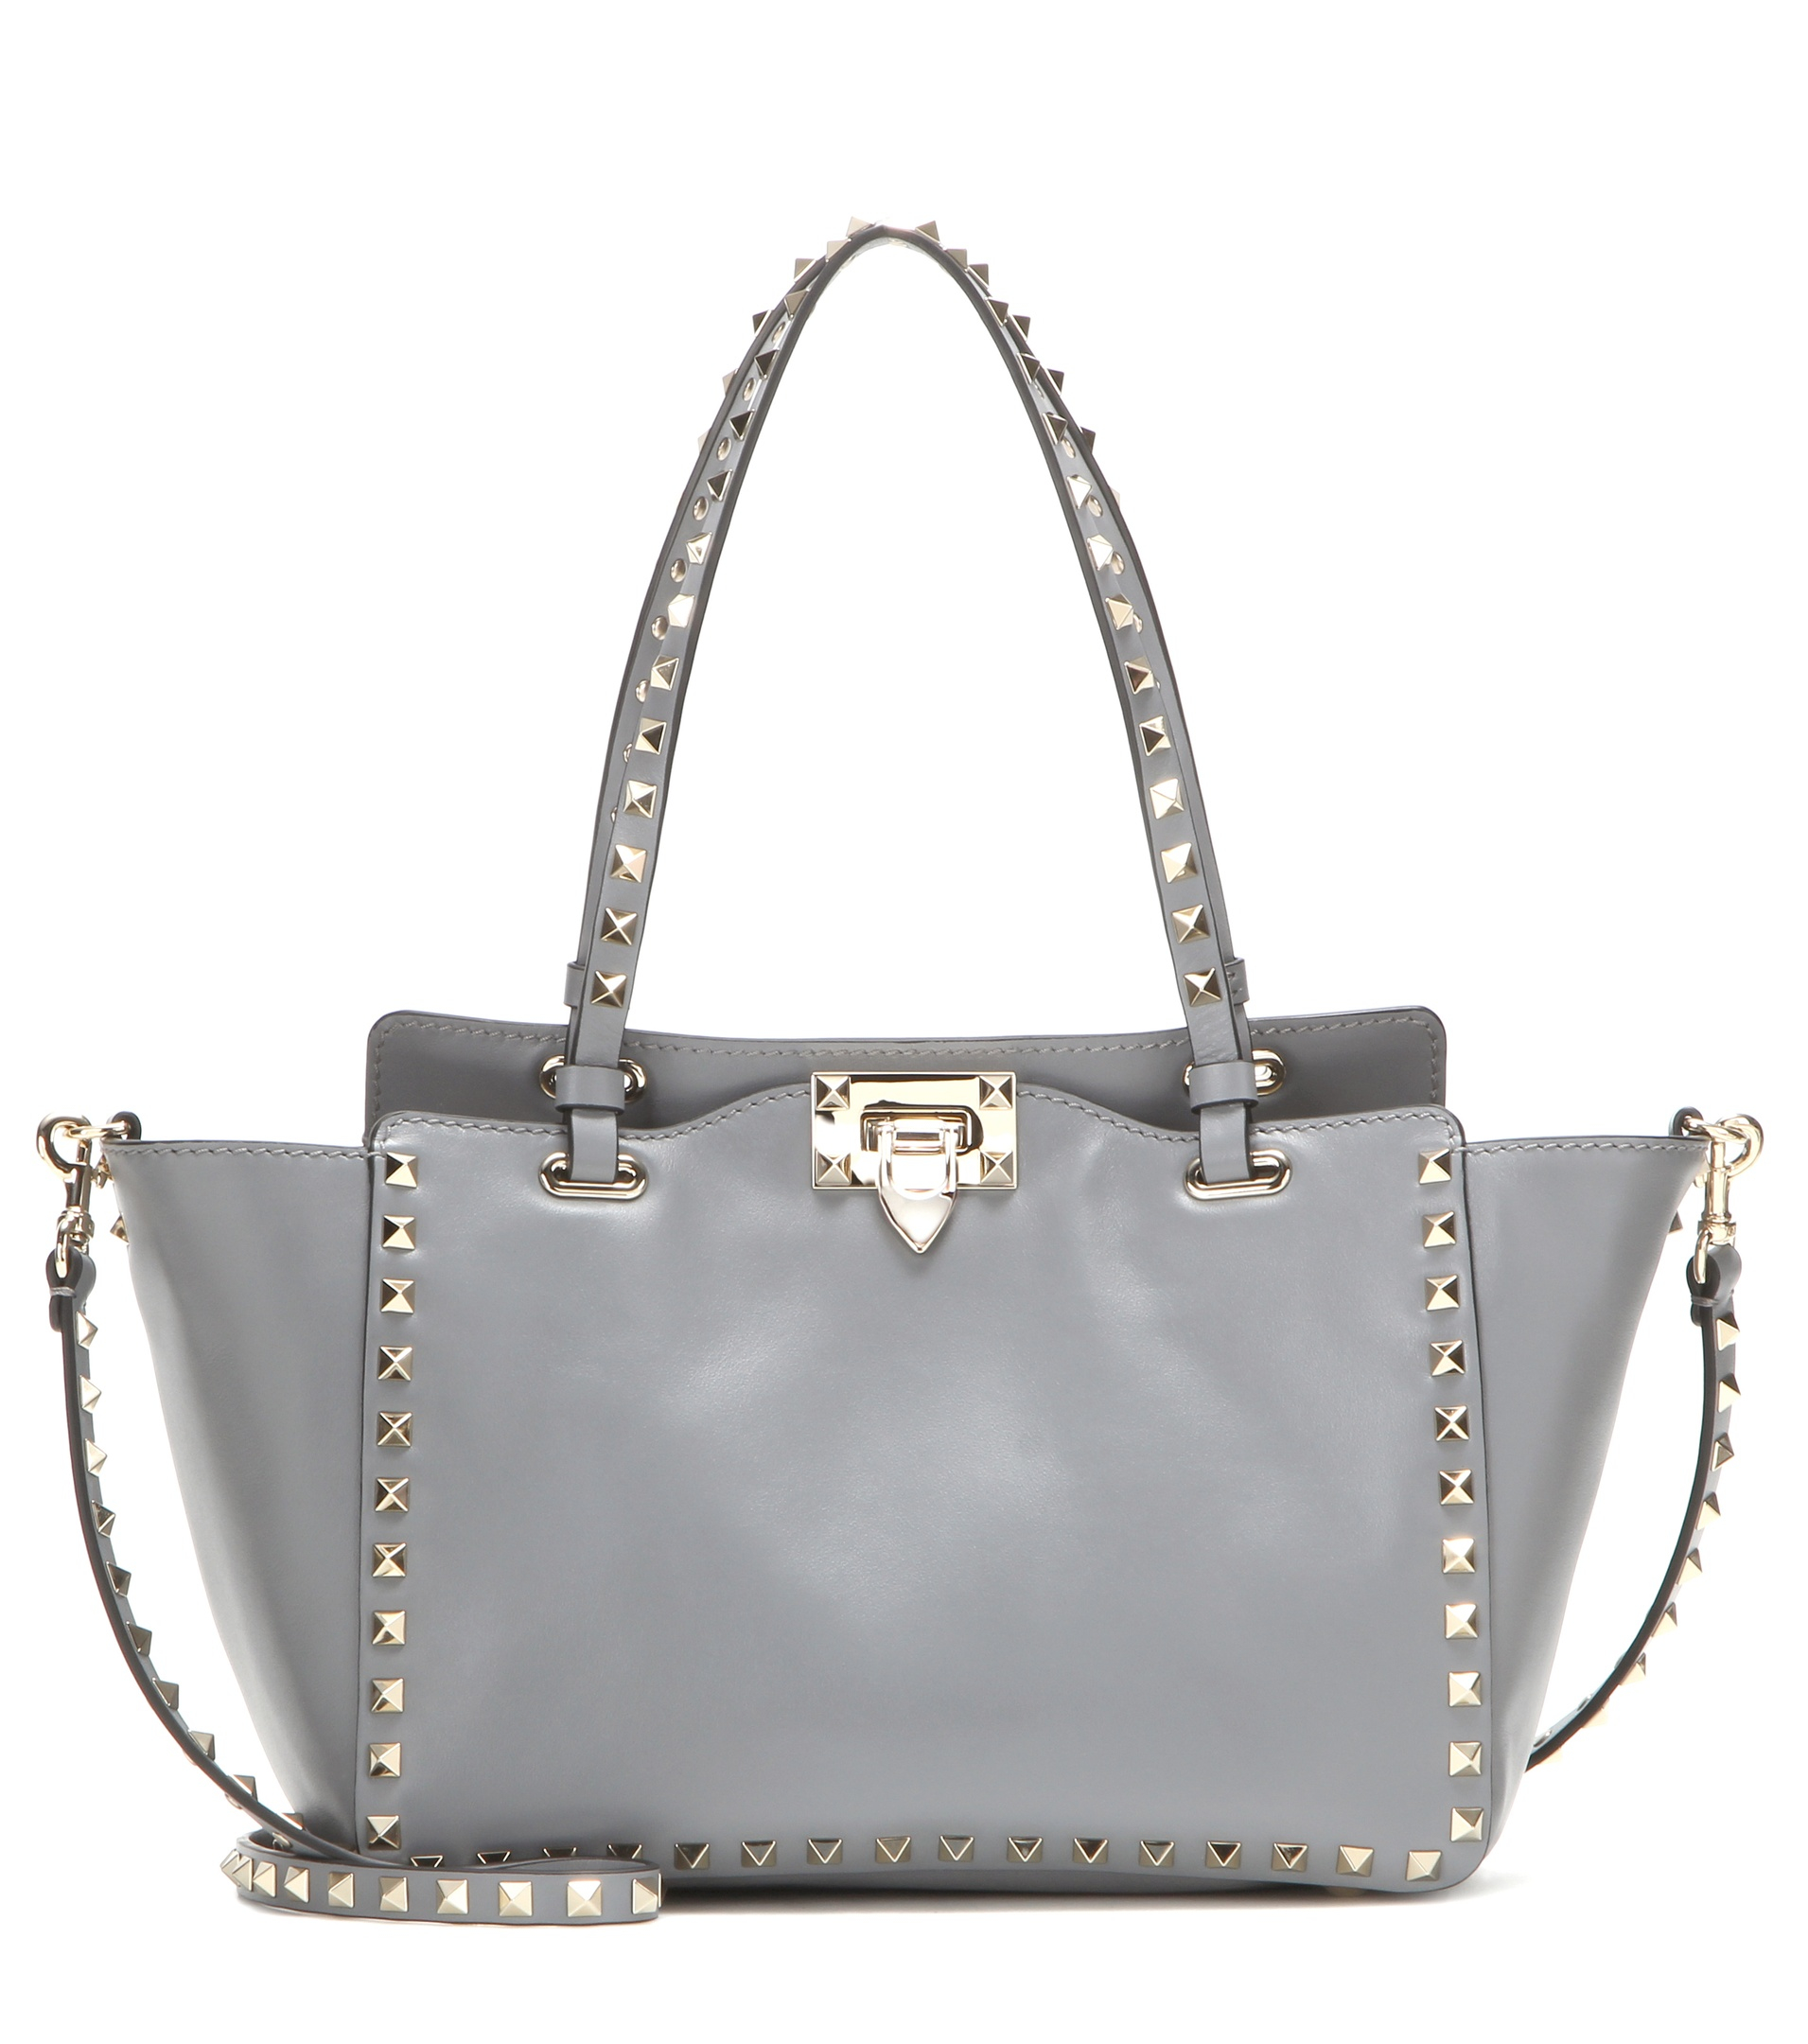 valentino garavani rockstud small leather tote in gray lyst. Black Bedroom Furniture Sets. Home Design Ideas